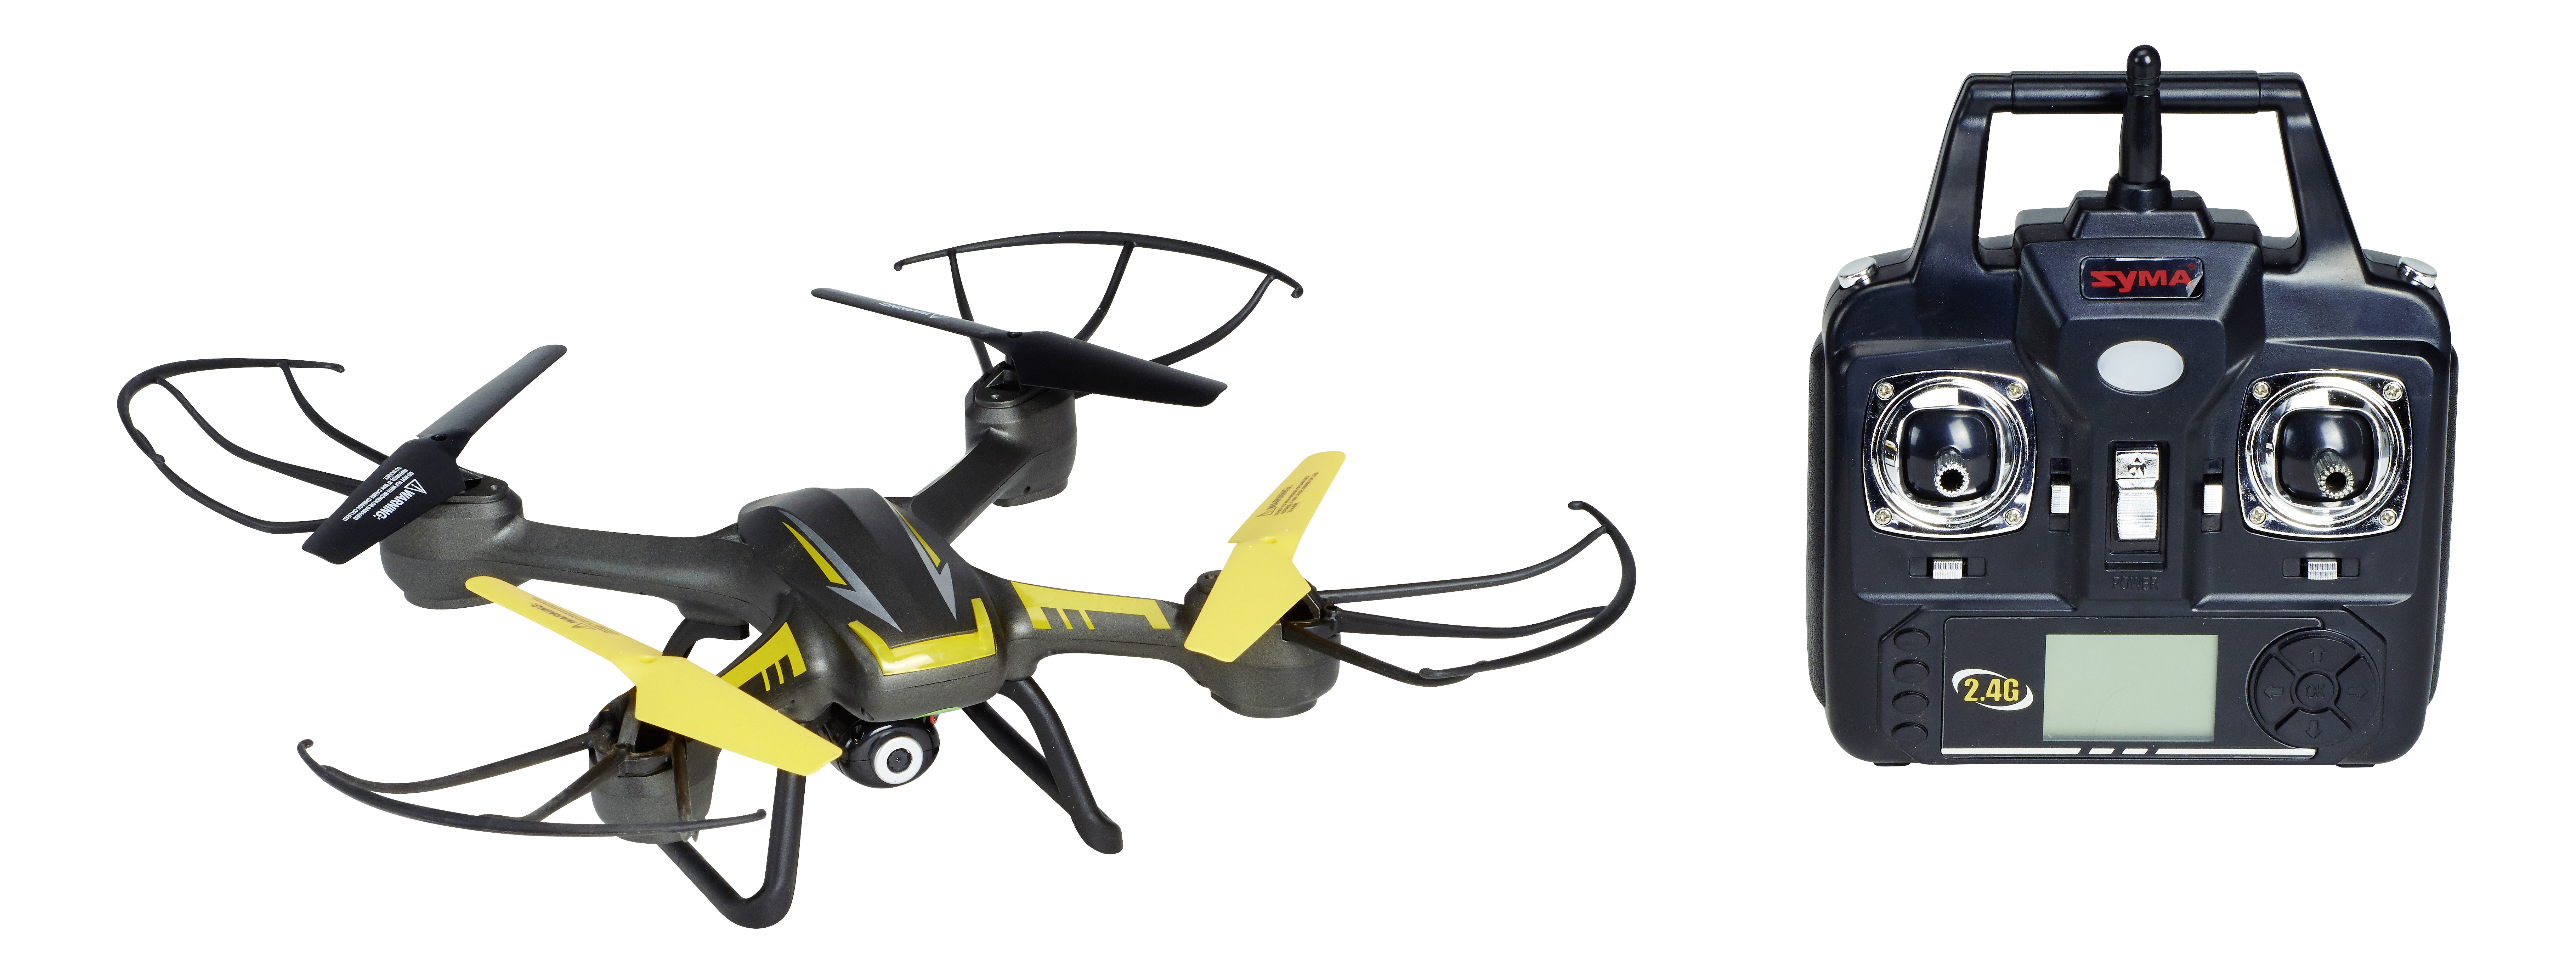 drone parrot fpv pack